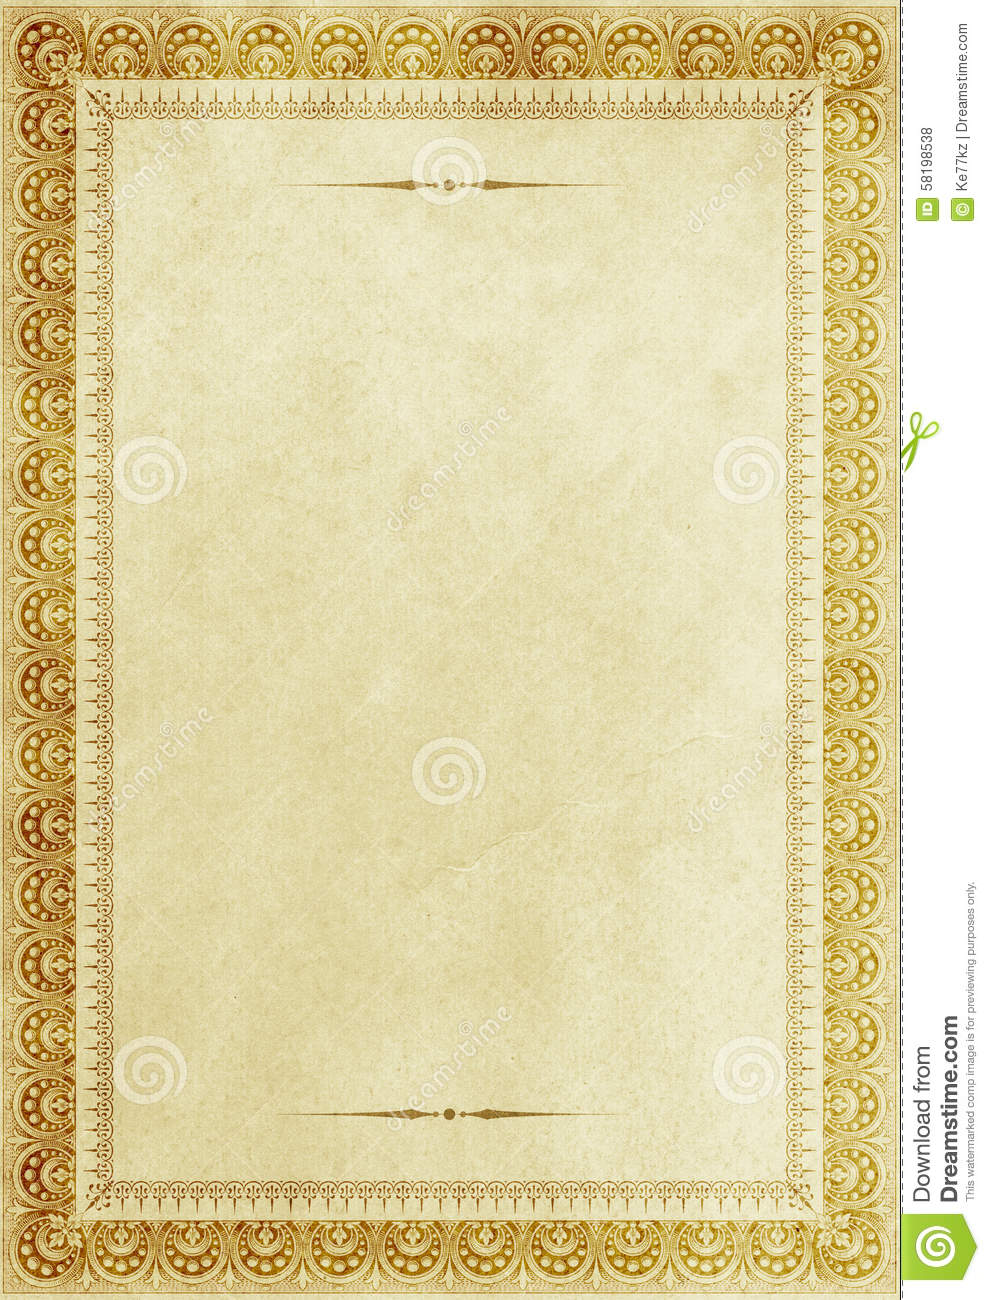 old paper backdrop with old fashioned decorative border medieval clip art free medieval clip art illustrations